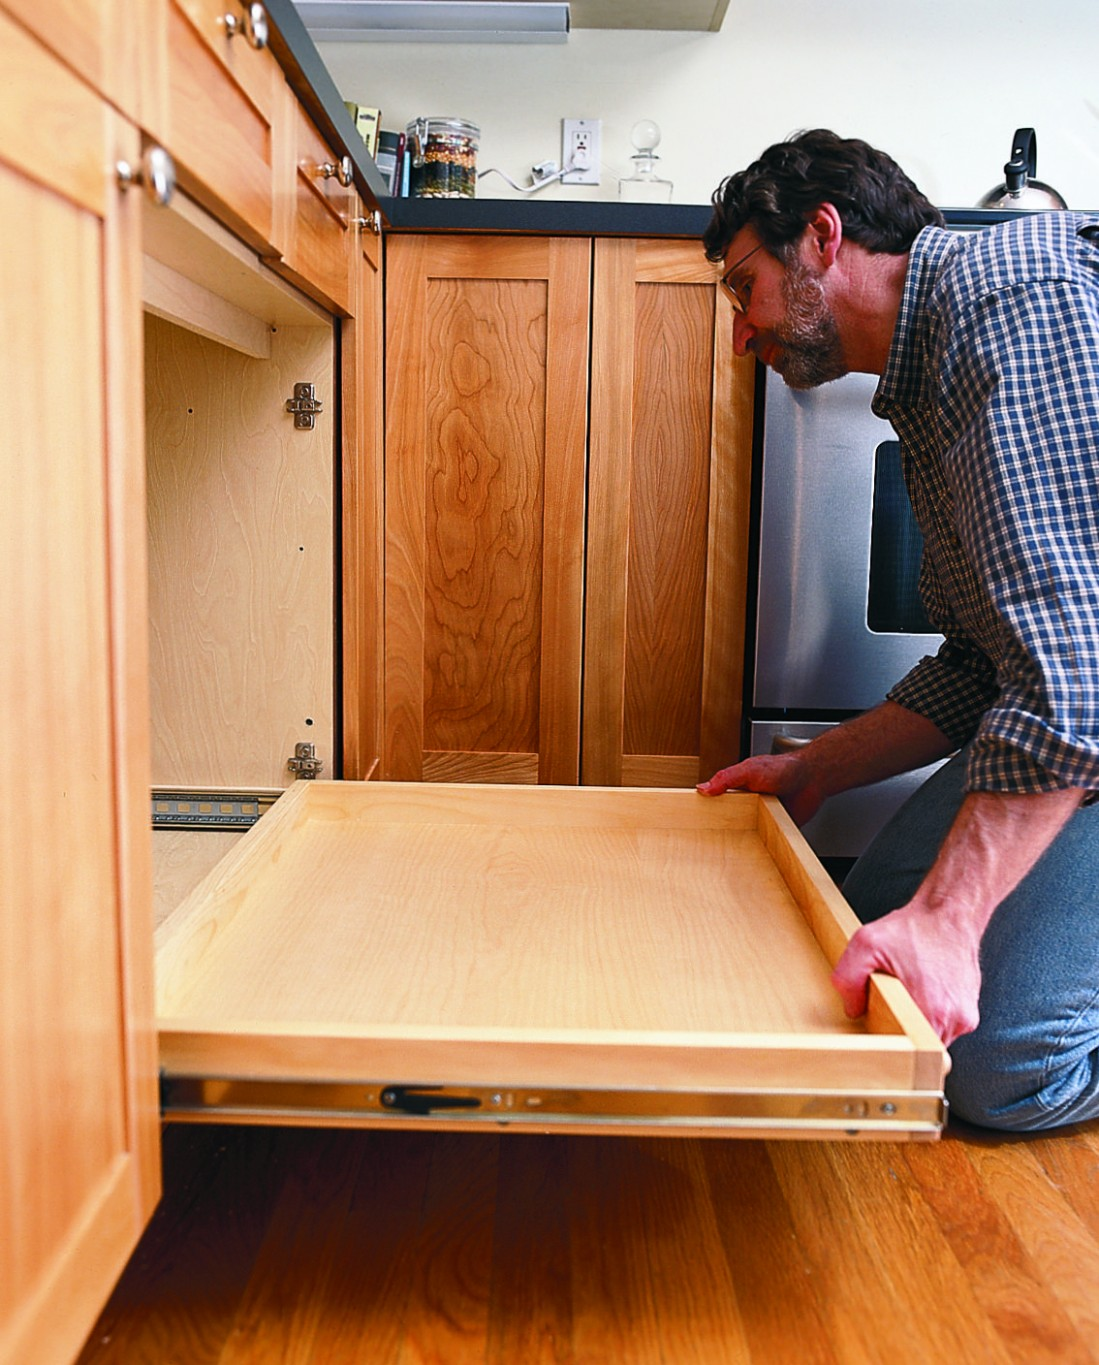 How to Install a Pull-Out Kitchen Shelf  Pull out kitchen shelves  - Kitchen Giant Cabinet Mounting Instructions